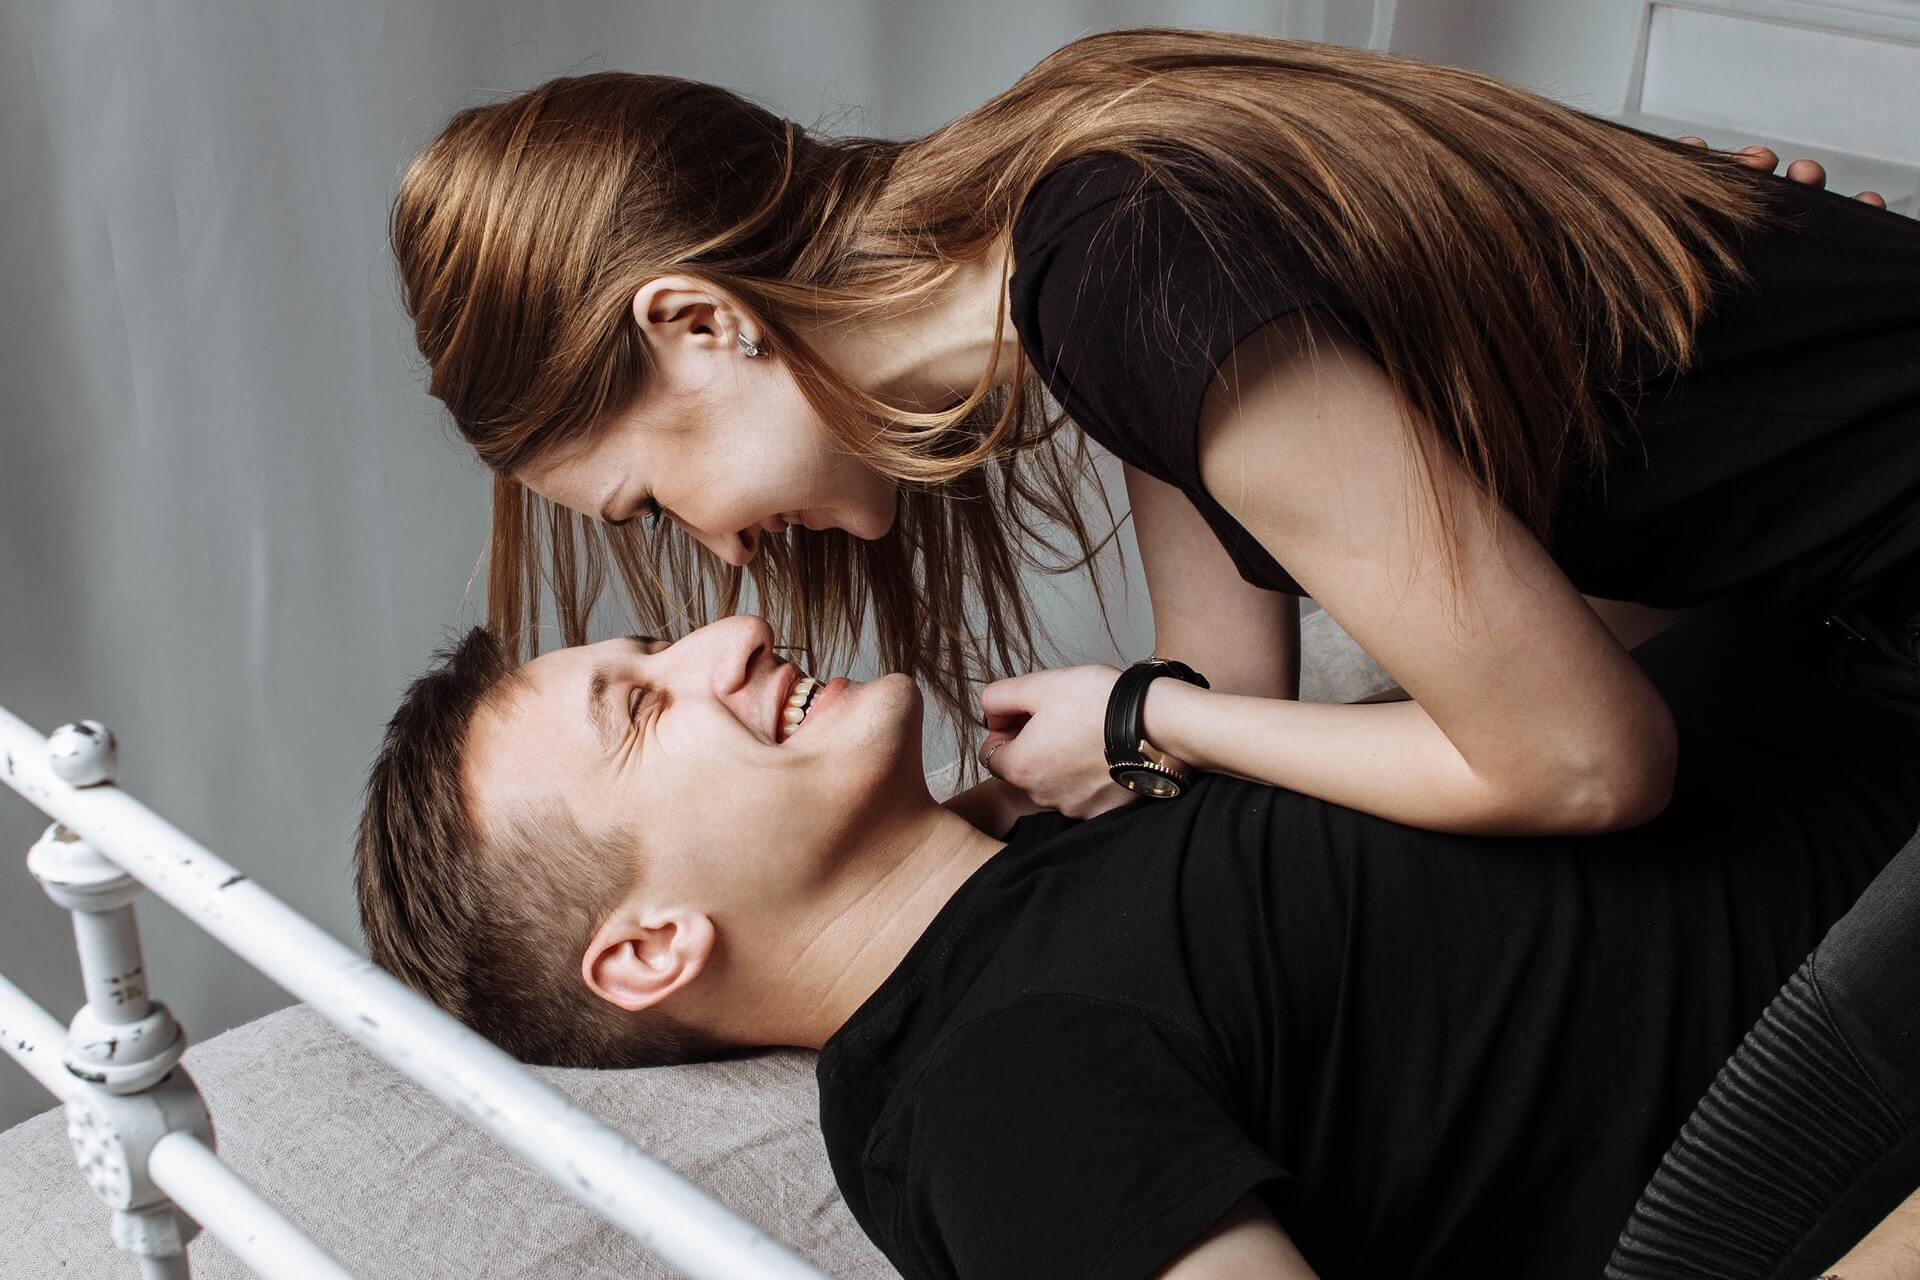 Are You in a Healthy Relationship? 12 Ways to Know